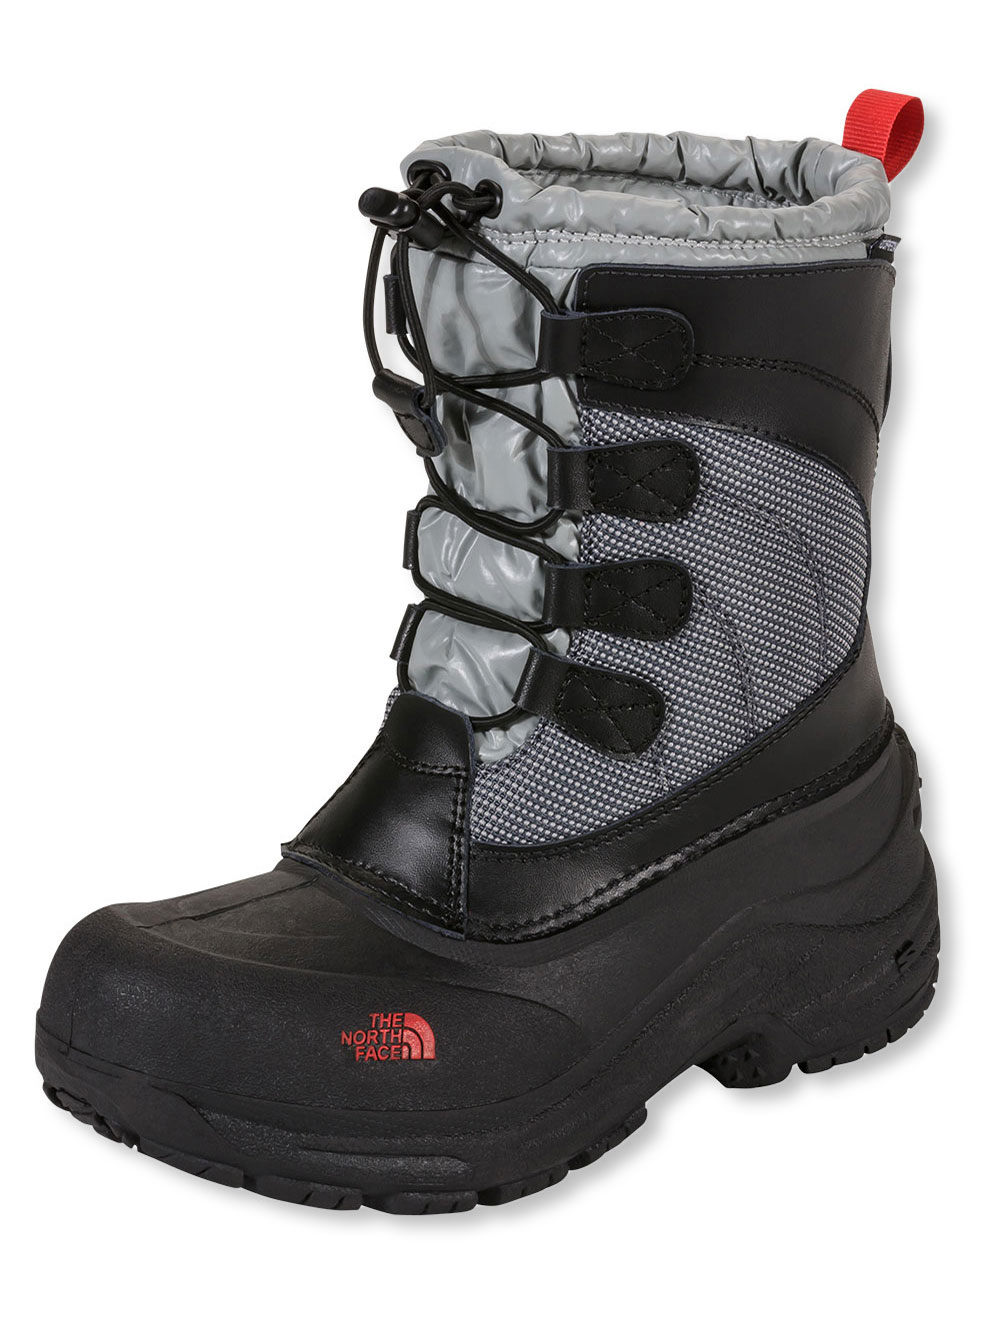 The North Face Girls Alpenglow Lace Boots (Youth Sizes 13 - 7) - black/griffin gray, 13 youth